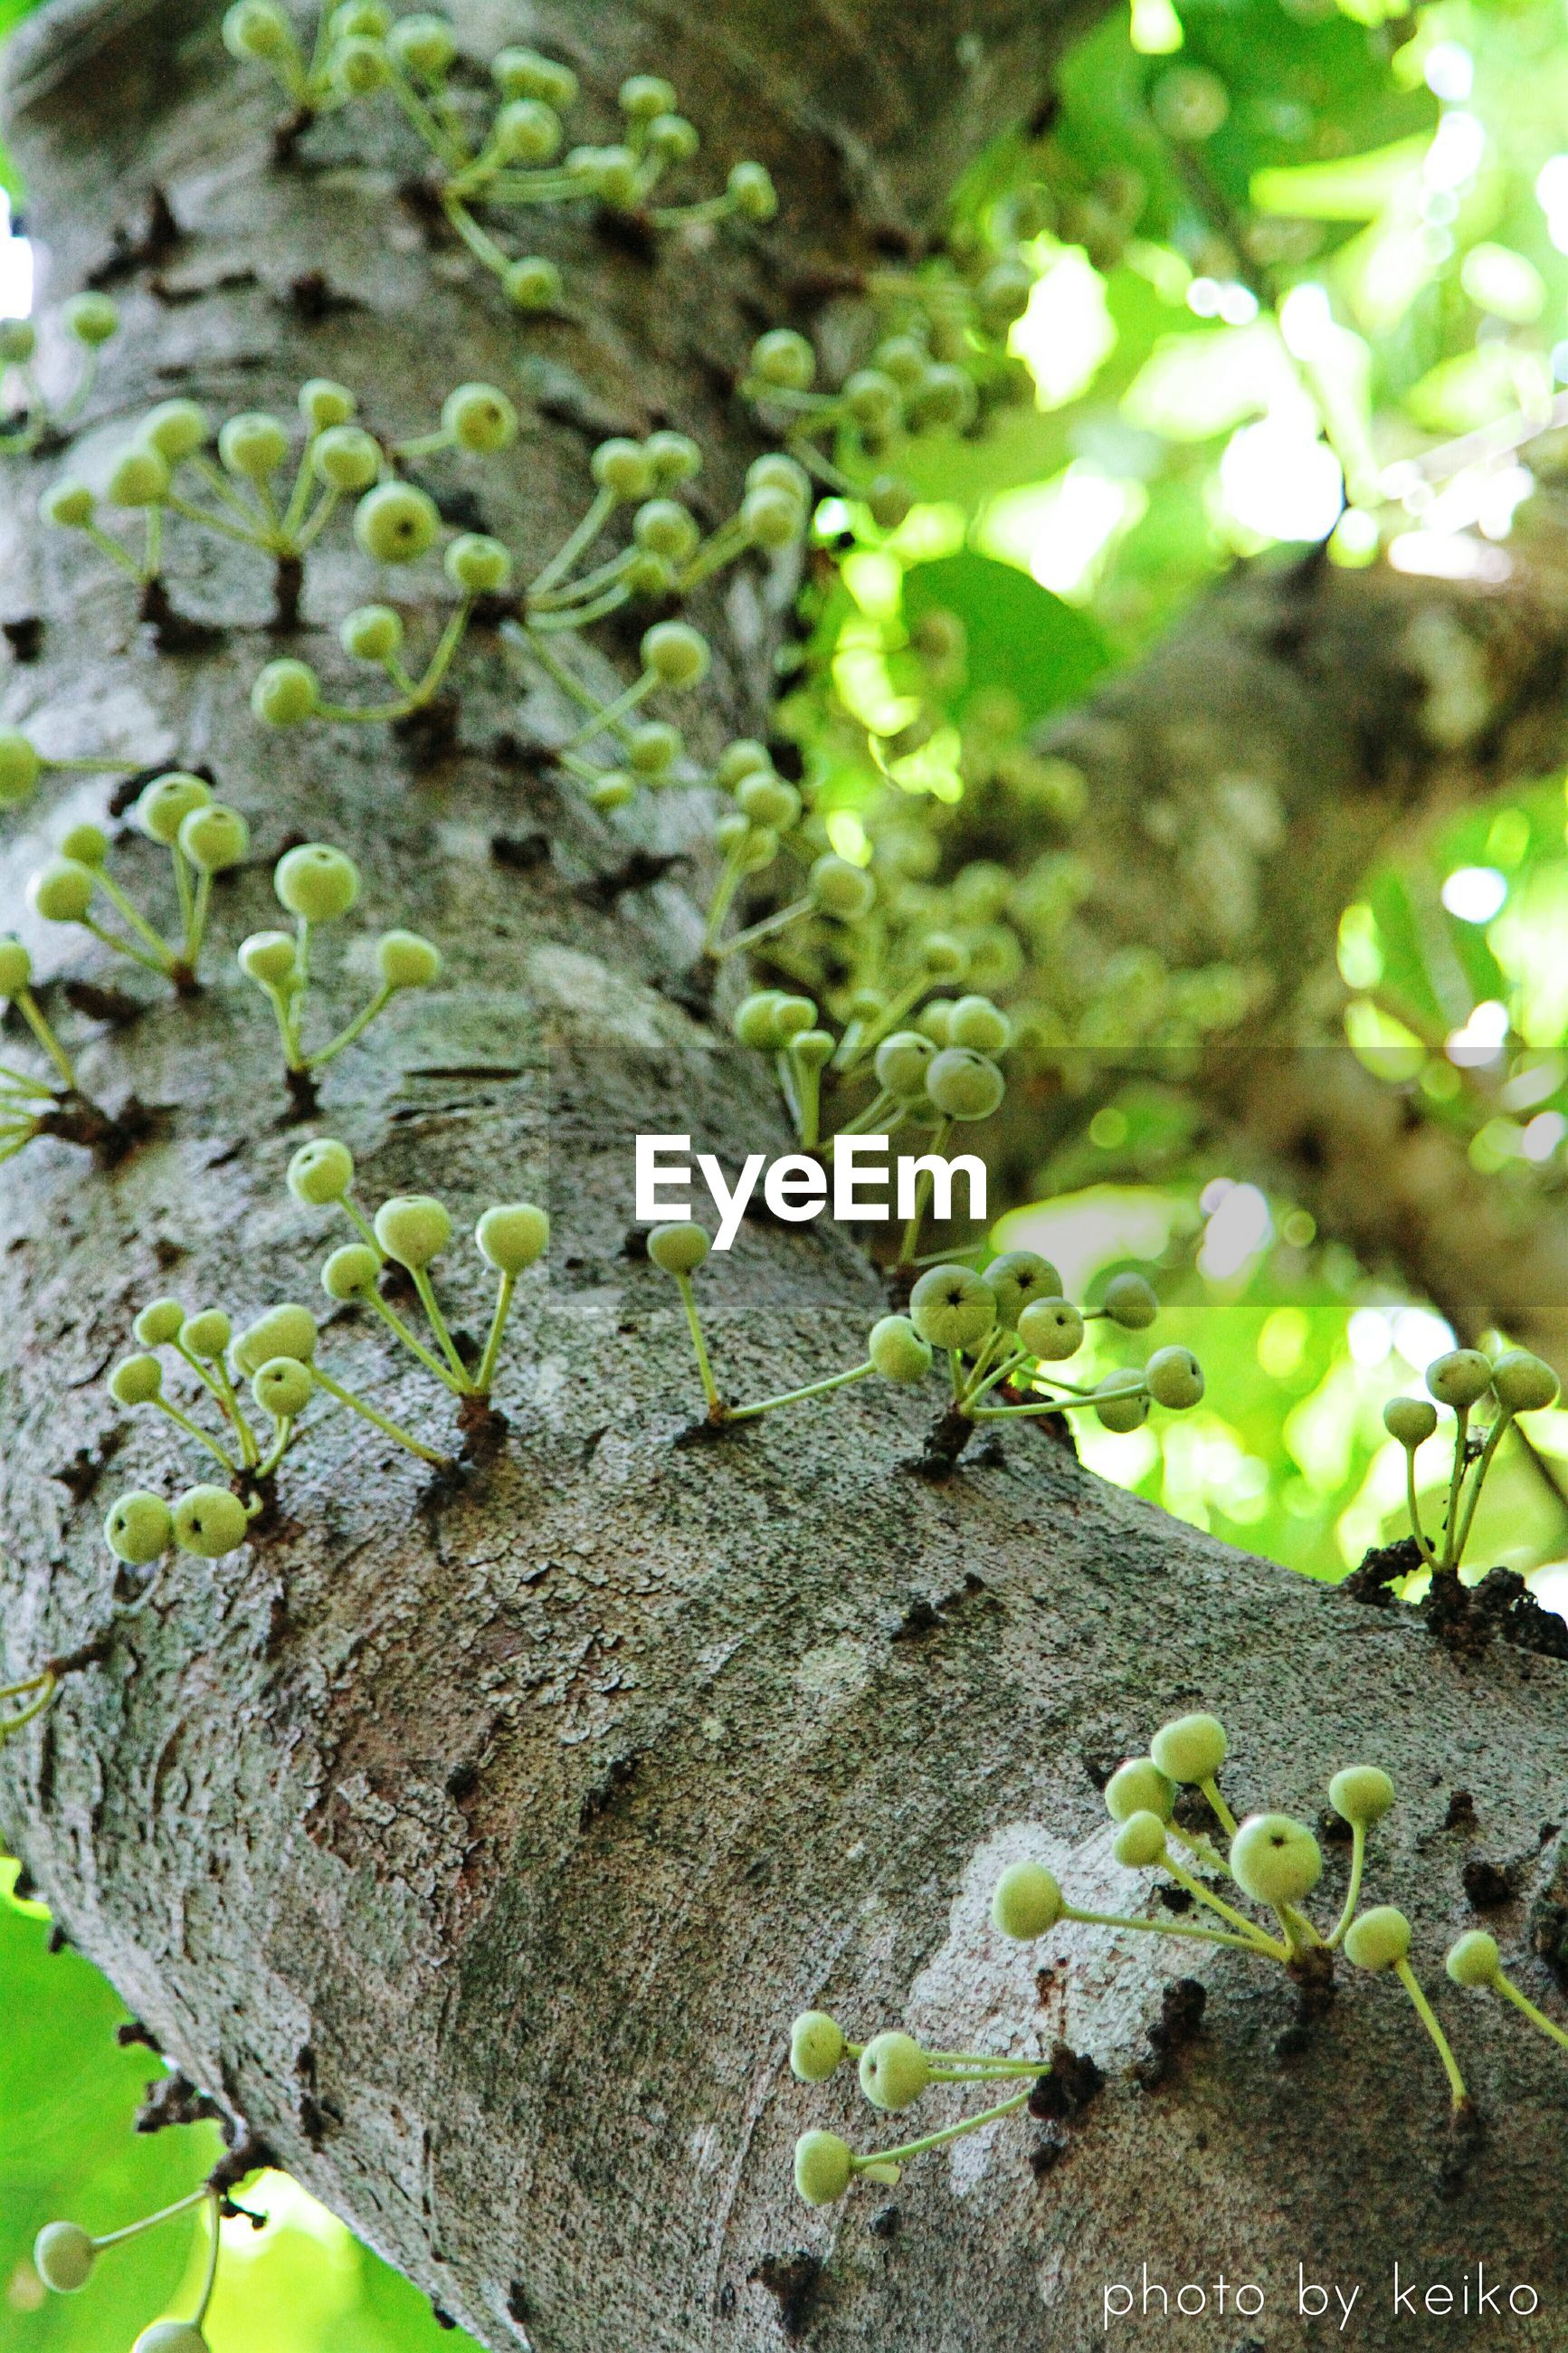 growth, leaf, green color, plant, nature, tree, moss, growing, beauty in nature, tranquility, rock - object, outdoors, day, close-up, green, no people, branch, tree trunk, ivy, low angle view